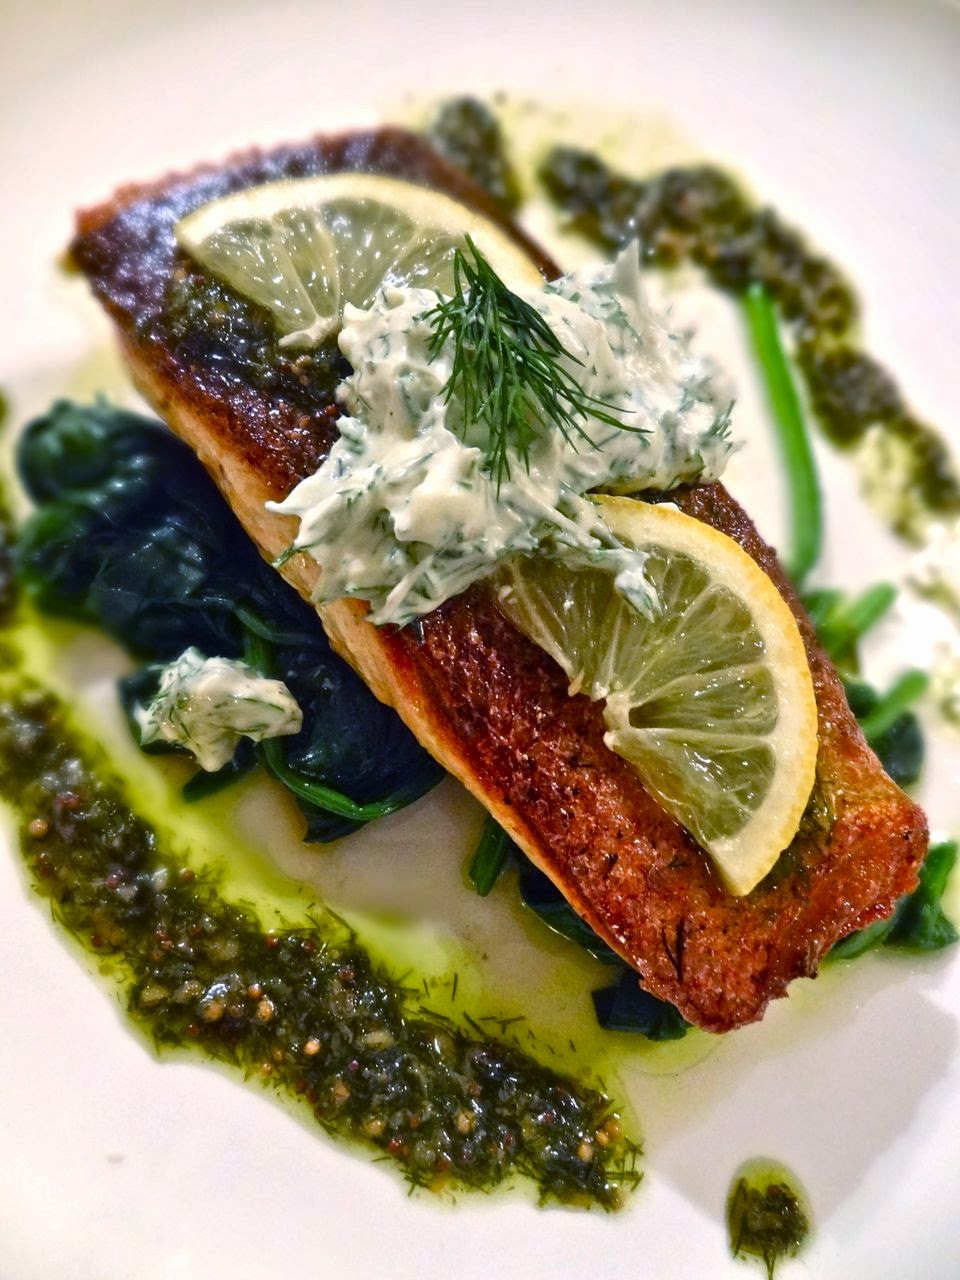 Scrumpdillyicious: Pan-Seared Salmon with Mustard-Caper Butter Sauce